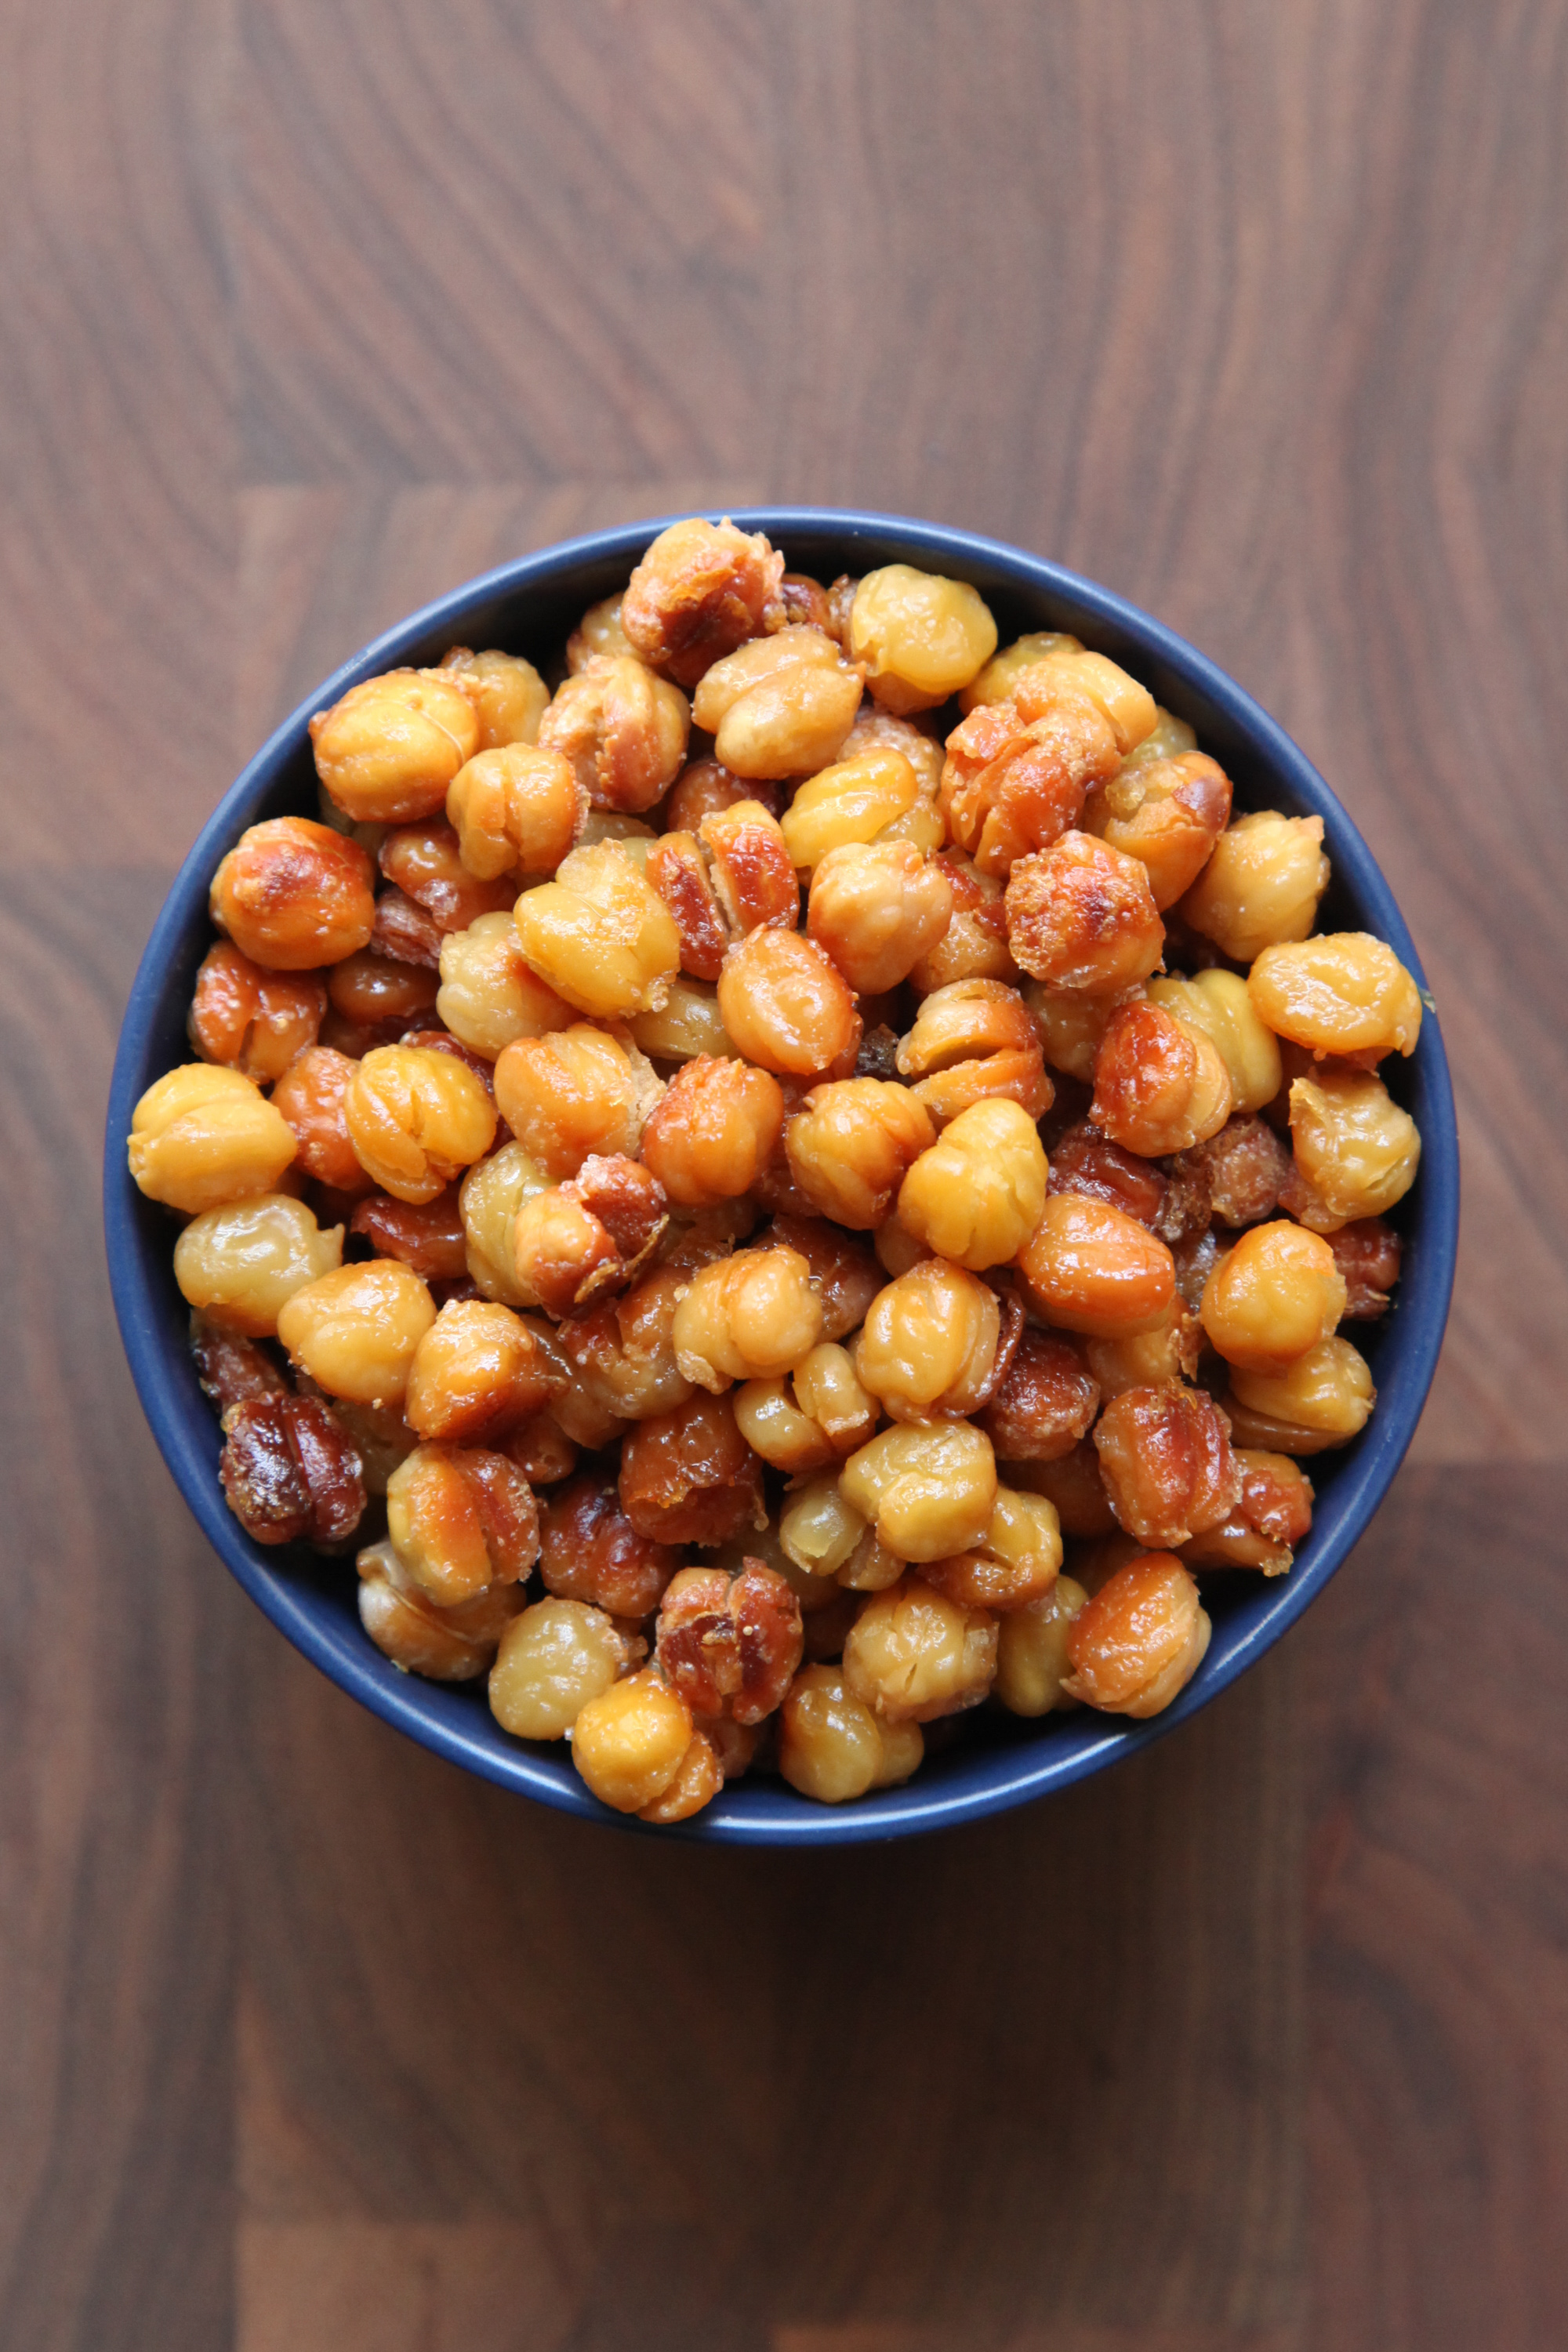 Salt and Vinegar Chickpeas | amodestfeast.com | A Modest Feast